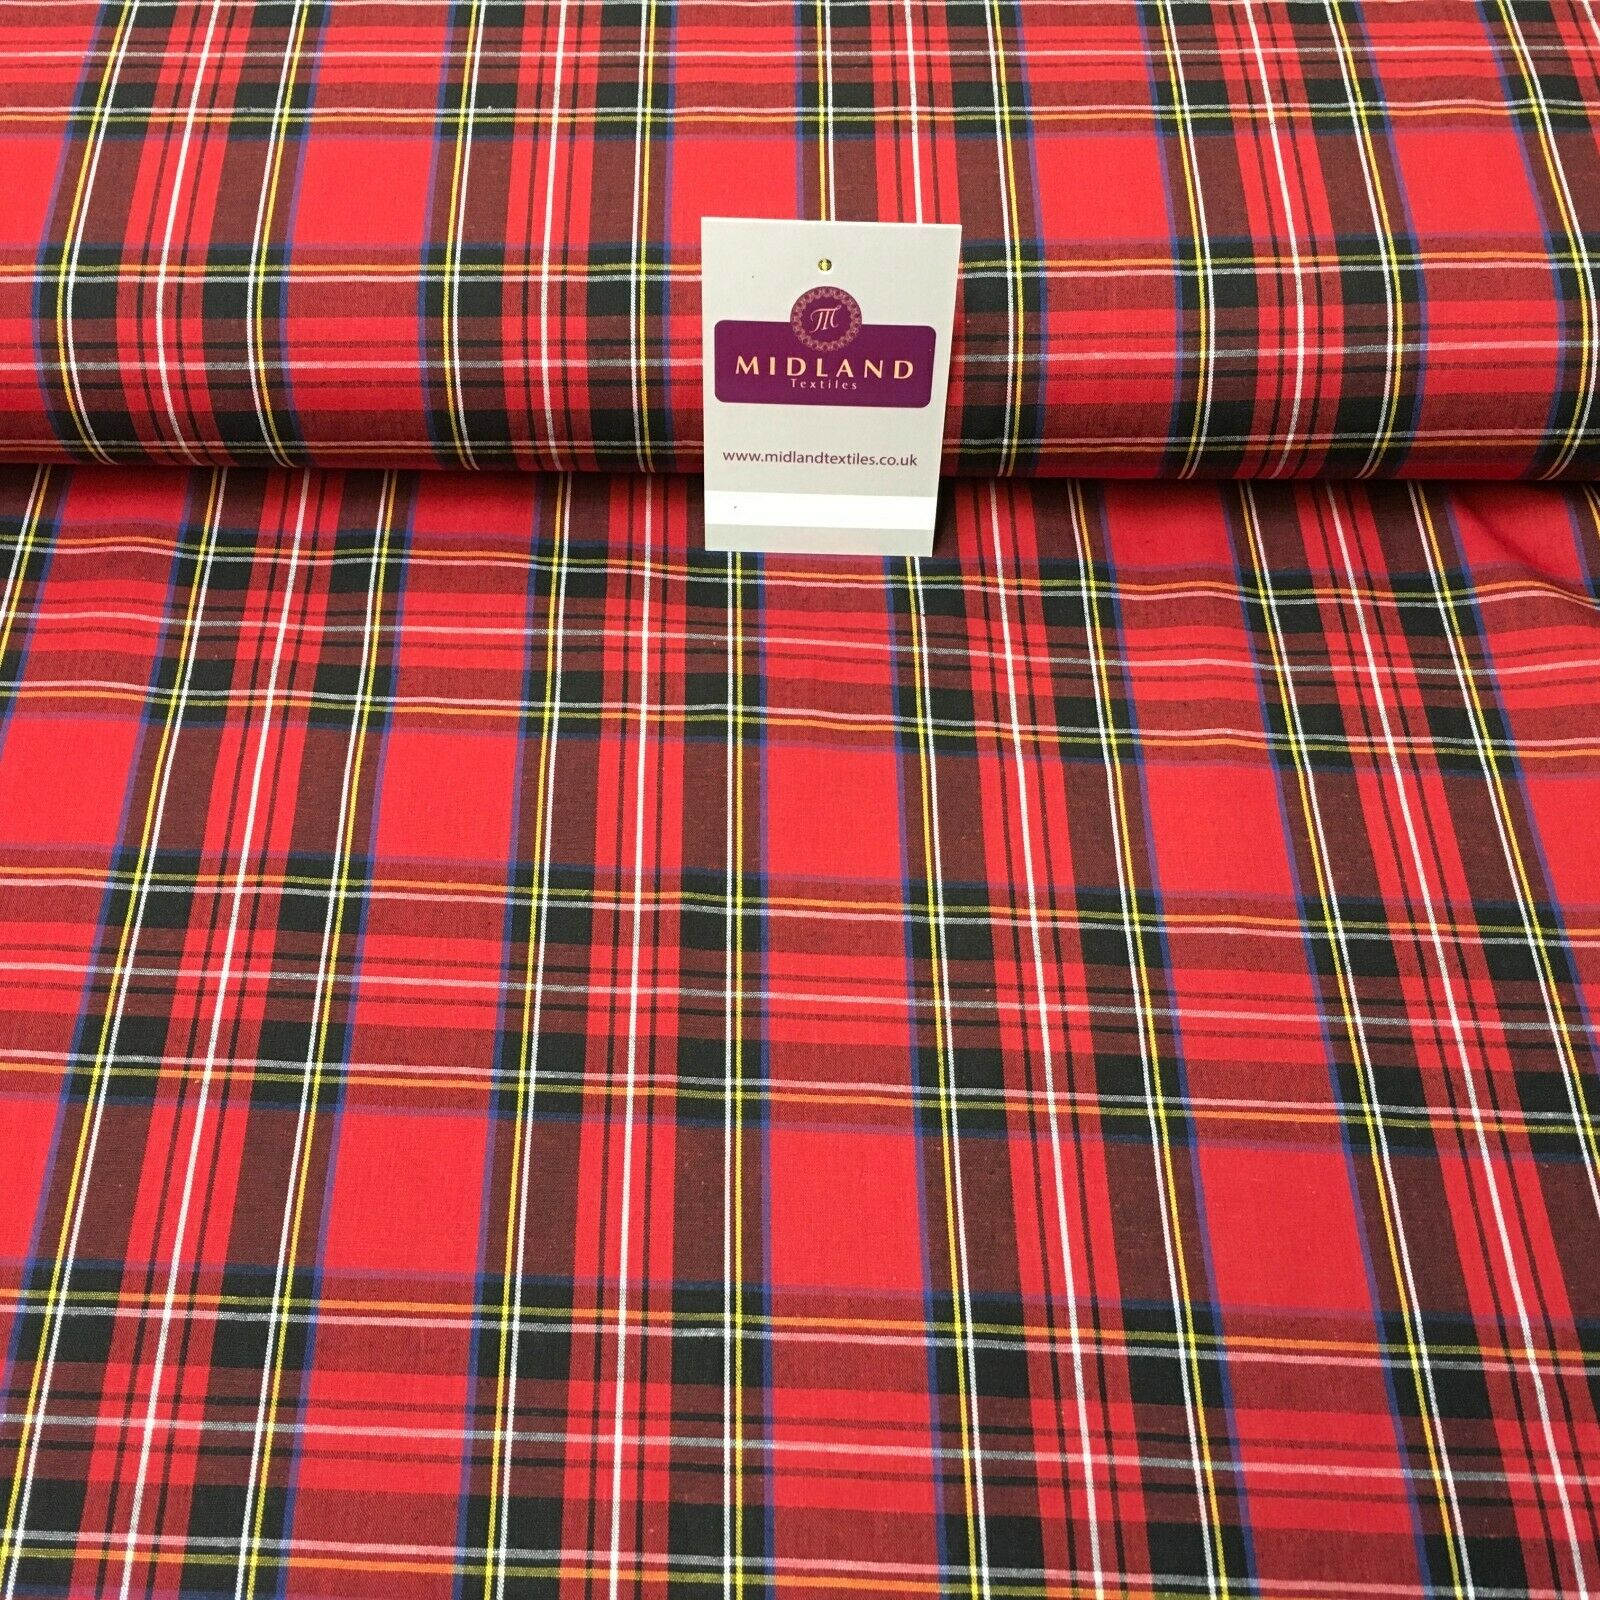 Flat Tartan Woven 100% Cotton Poplin ideal for clothing Fabric 147cm Wide MD1053